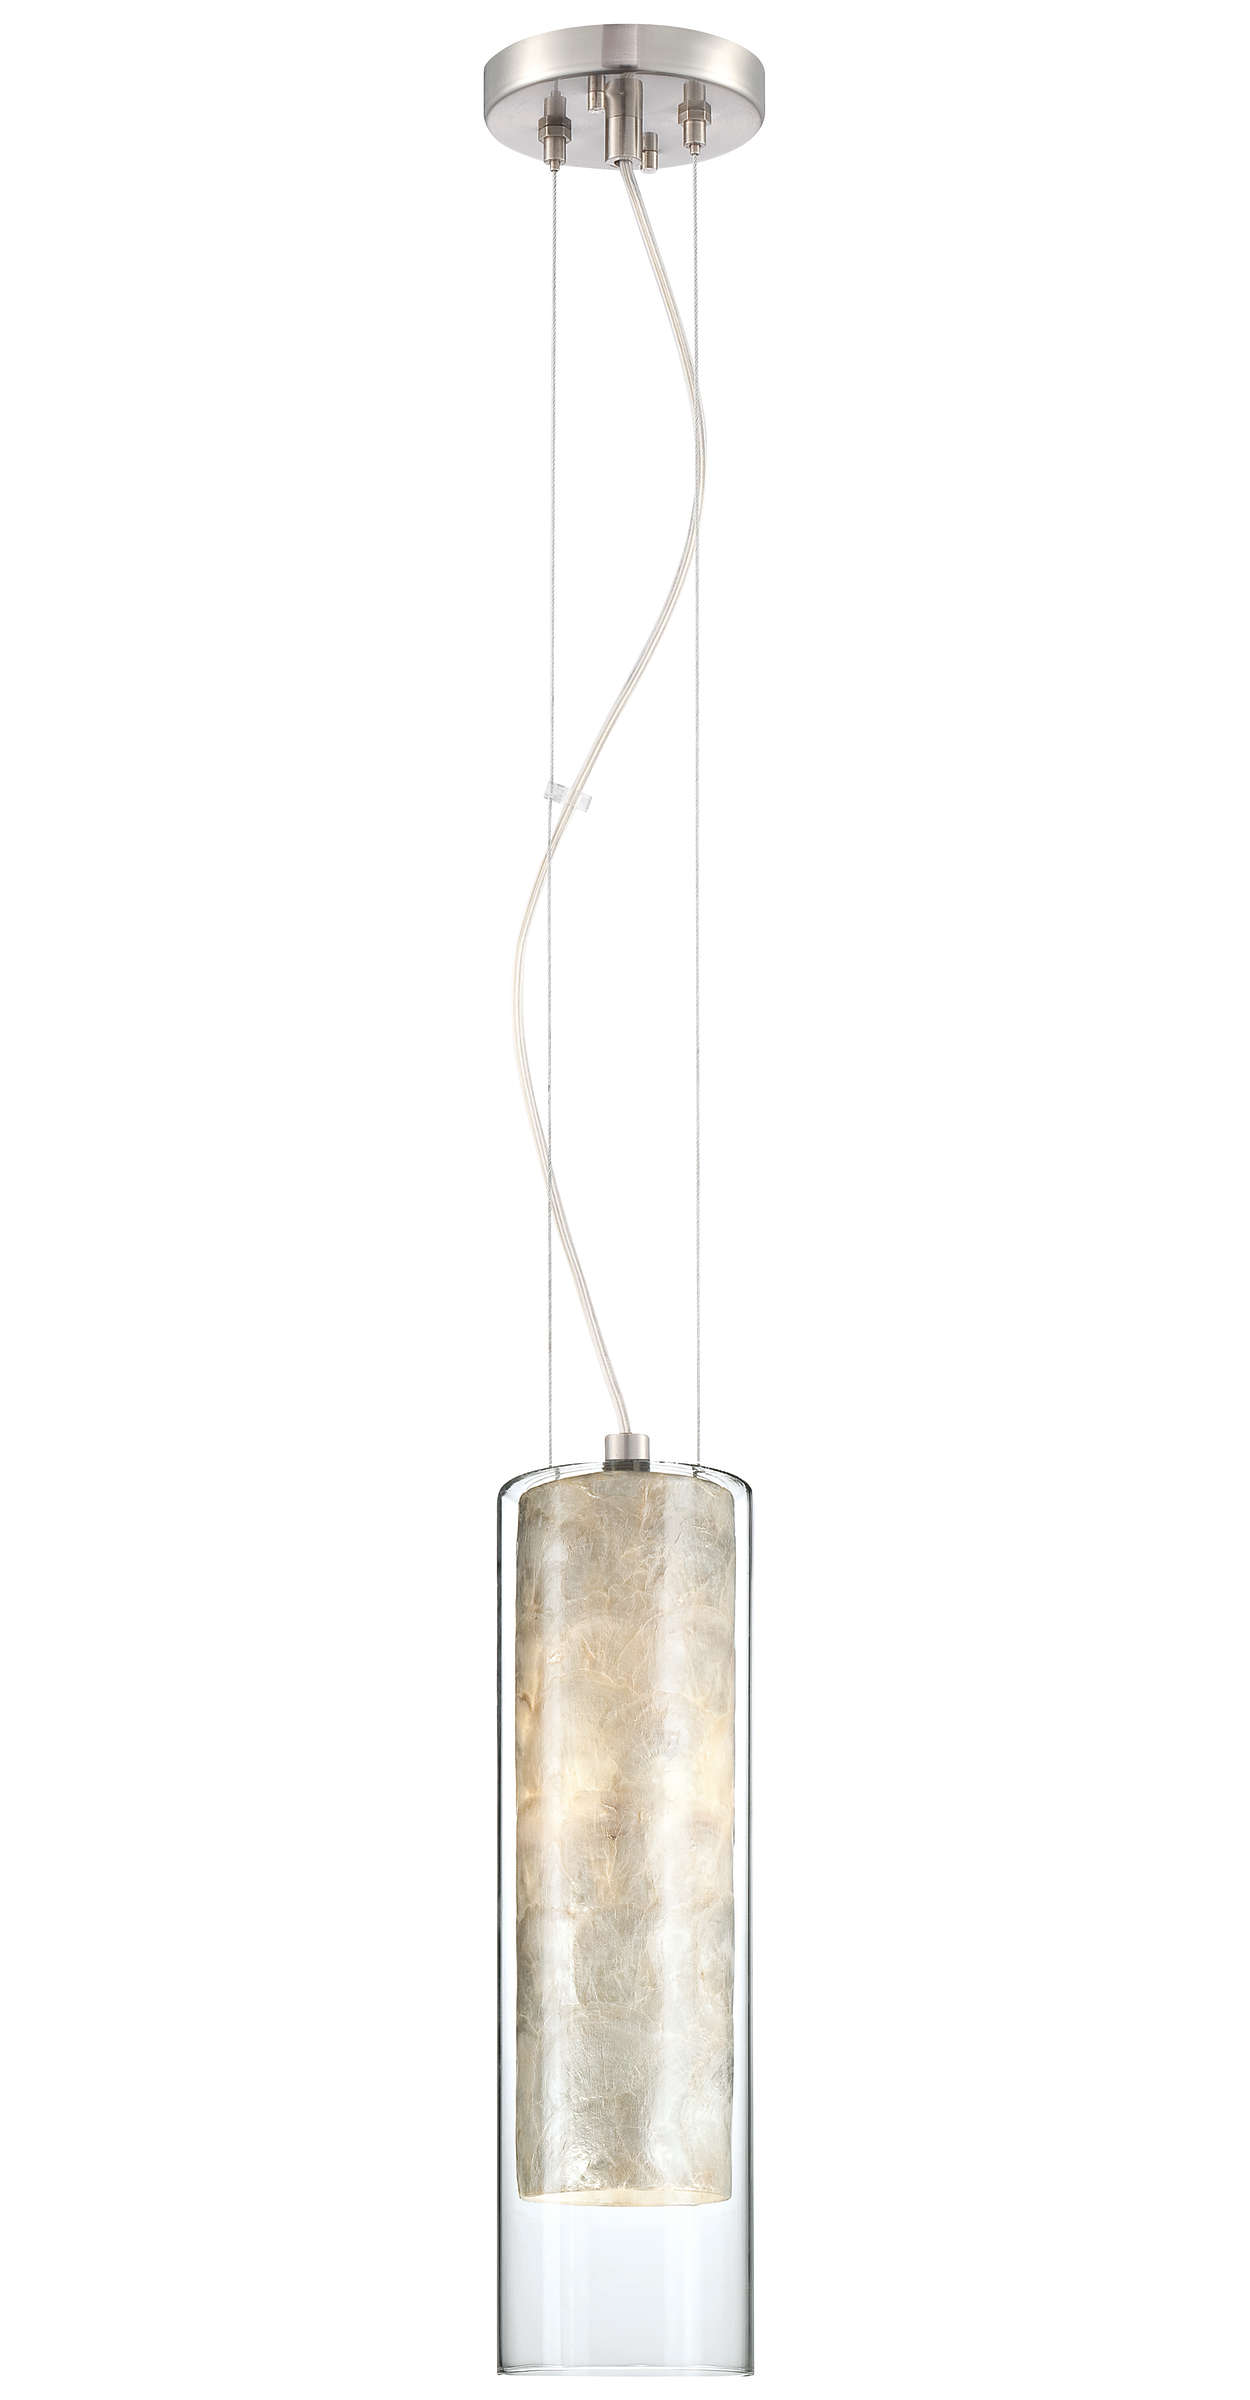 Element 1-light Pendant in Satin Nickel finish